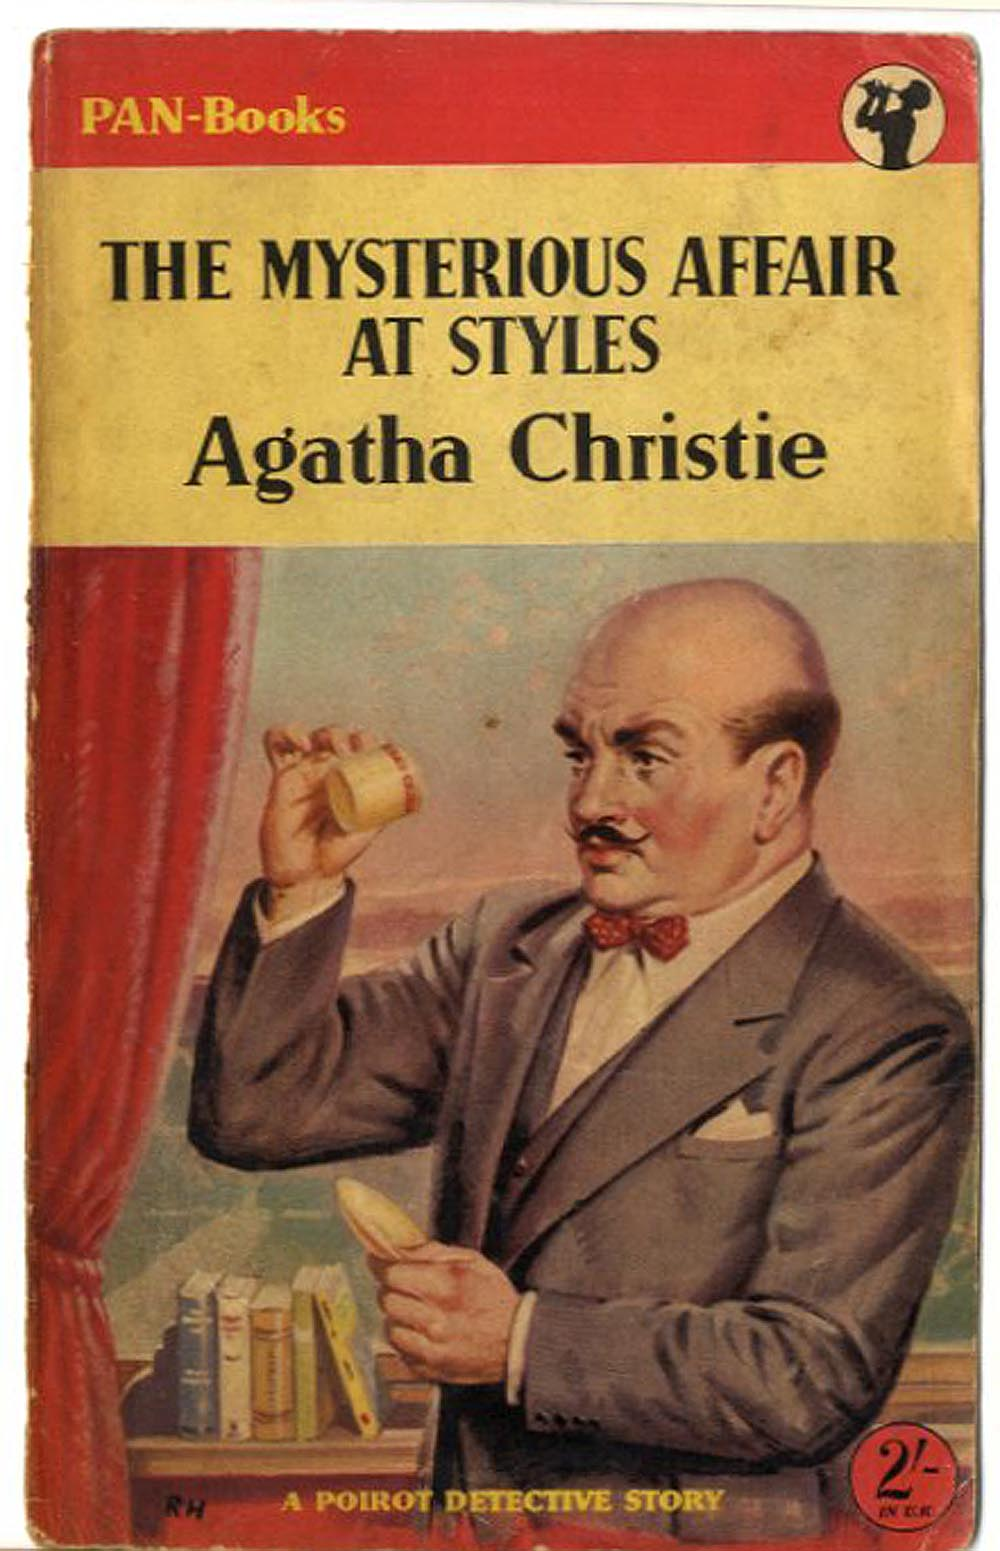 BOOK JACKETS AND COVERS Agatha Christie Gallery two